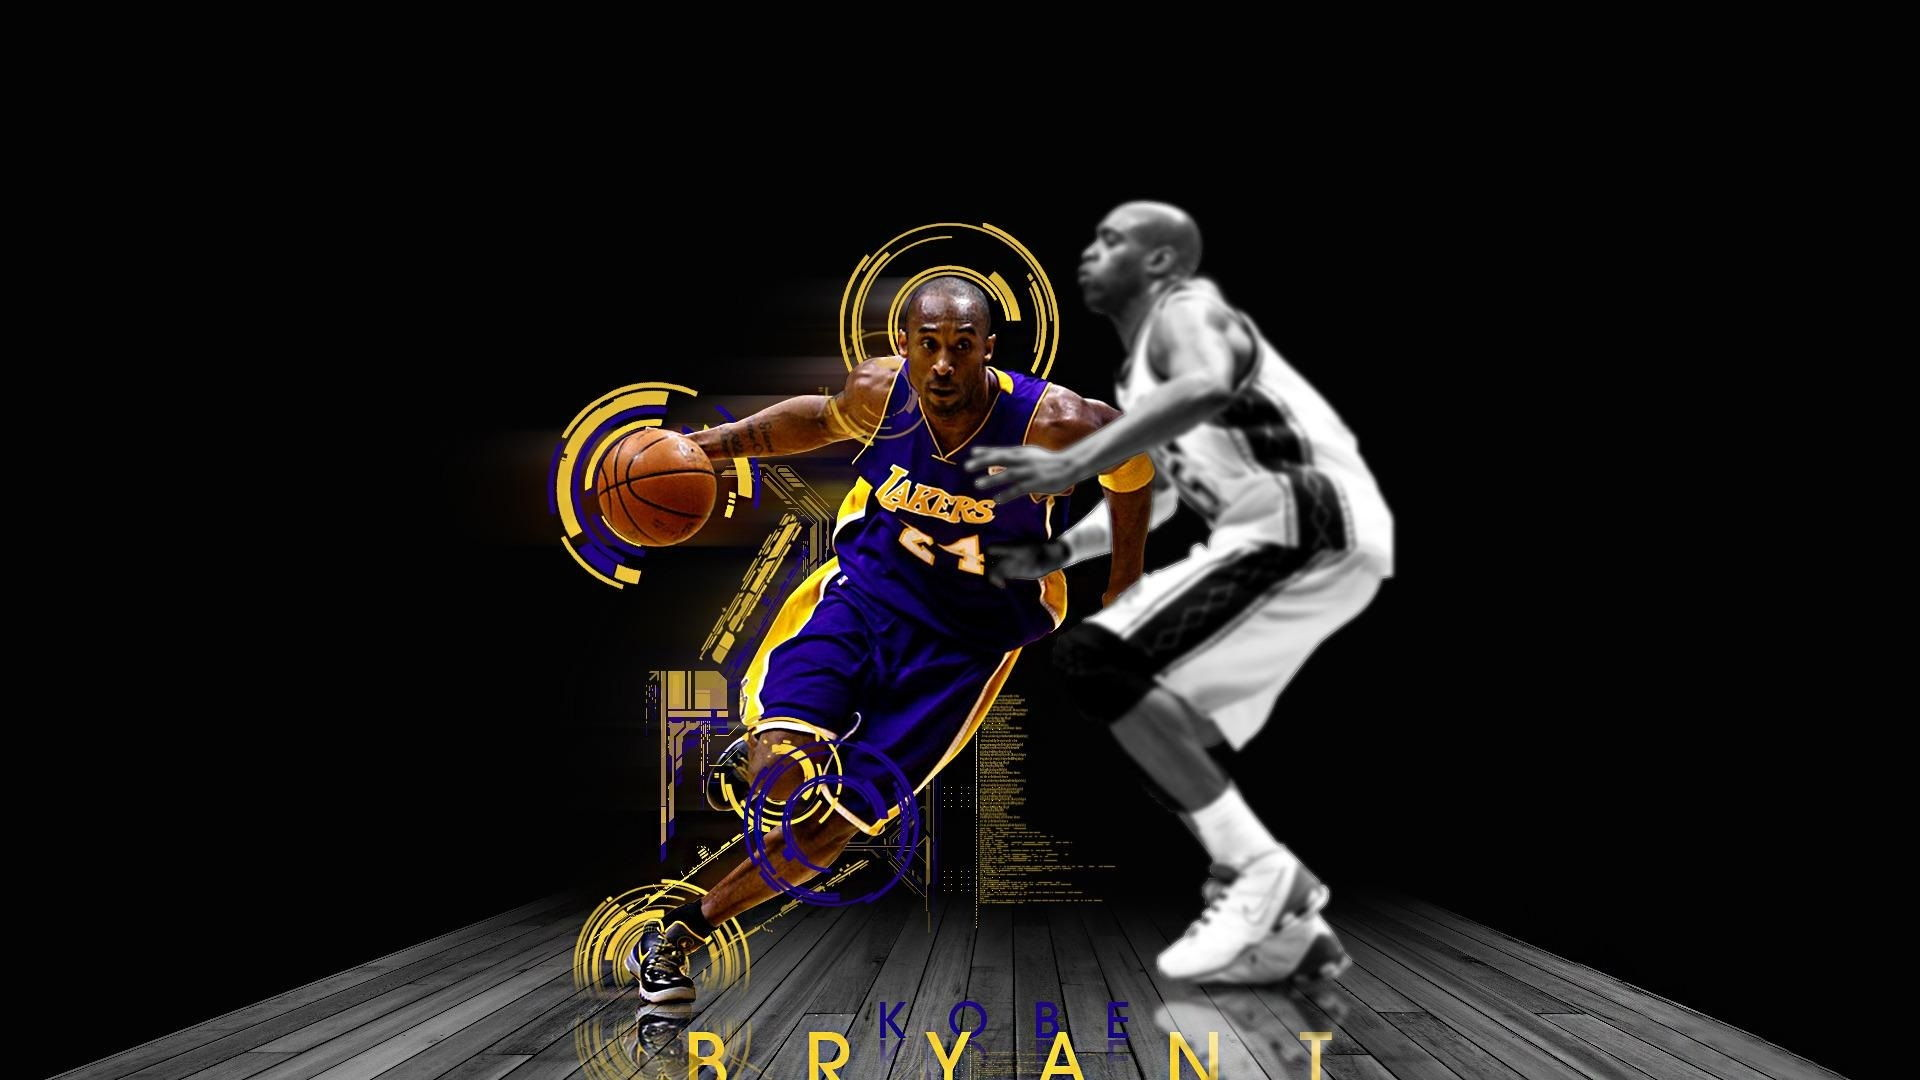 gallery for cool basketball player pictures